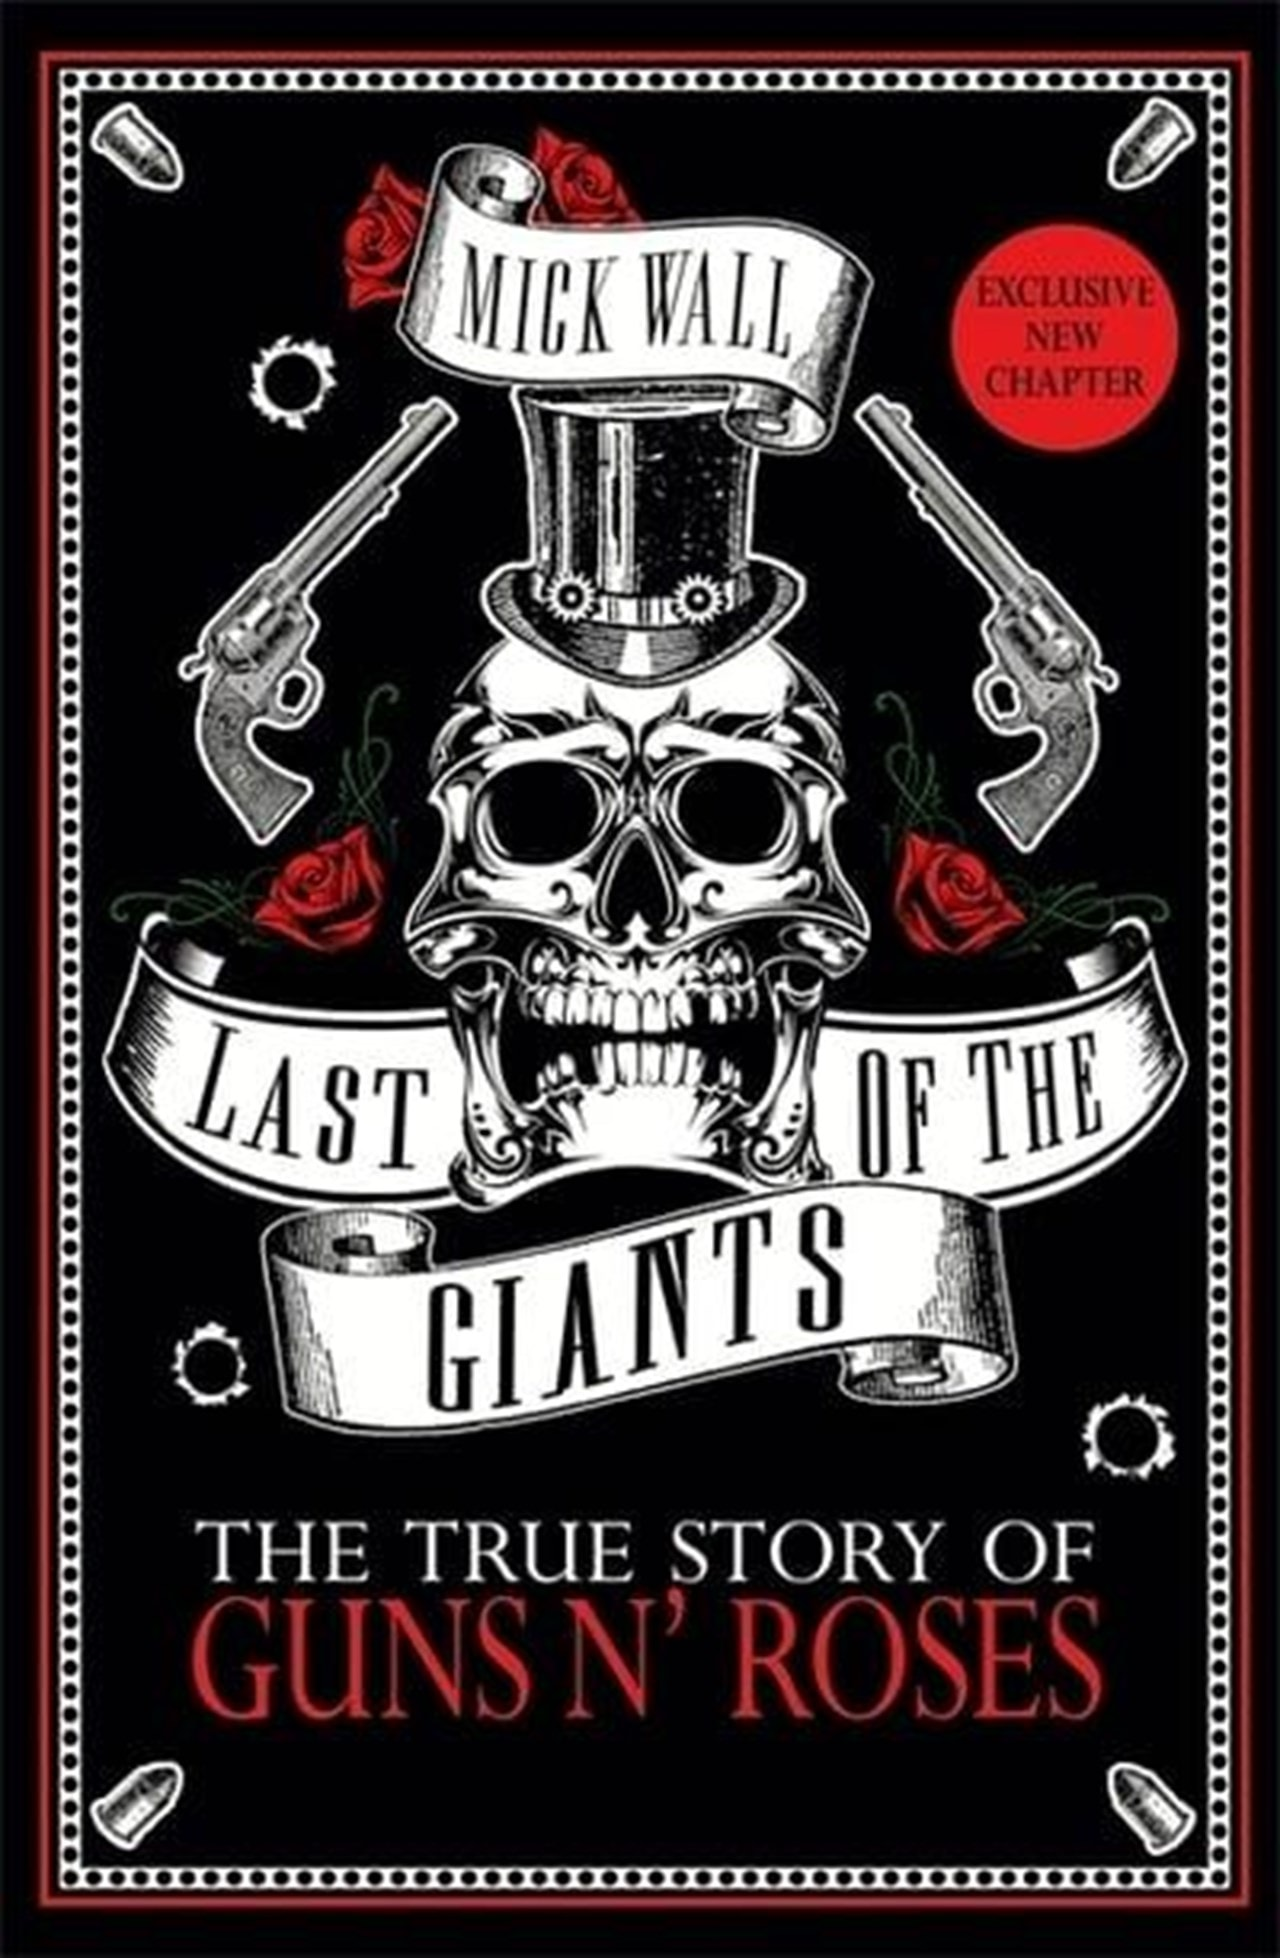 Last Of The Giants: The True Story Of Guns N' Roses - 1